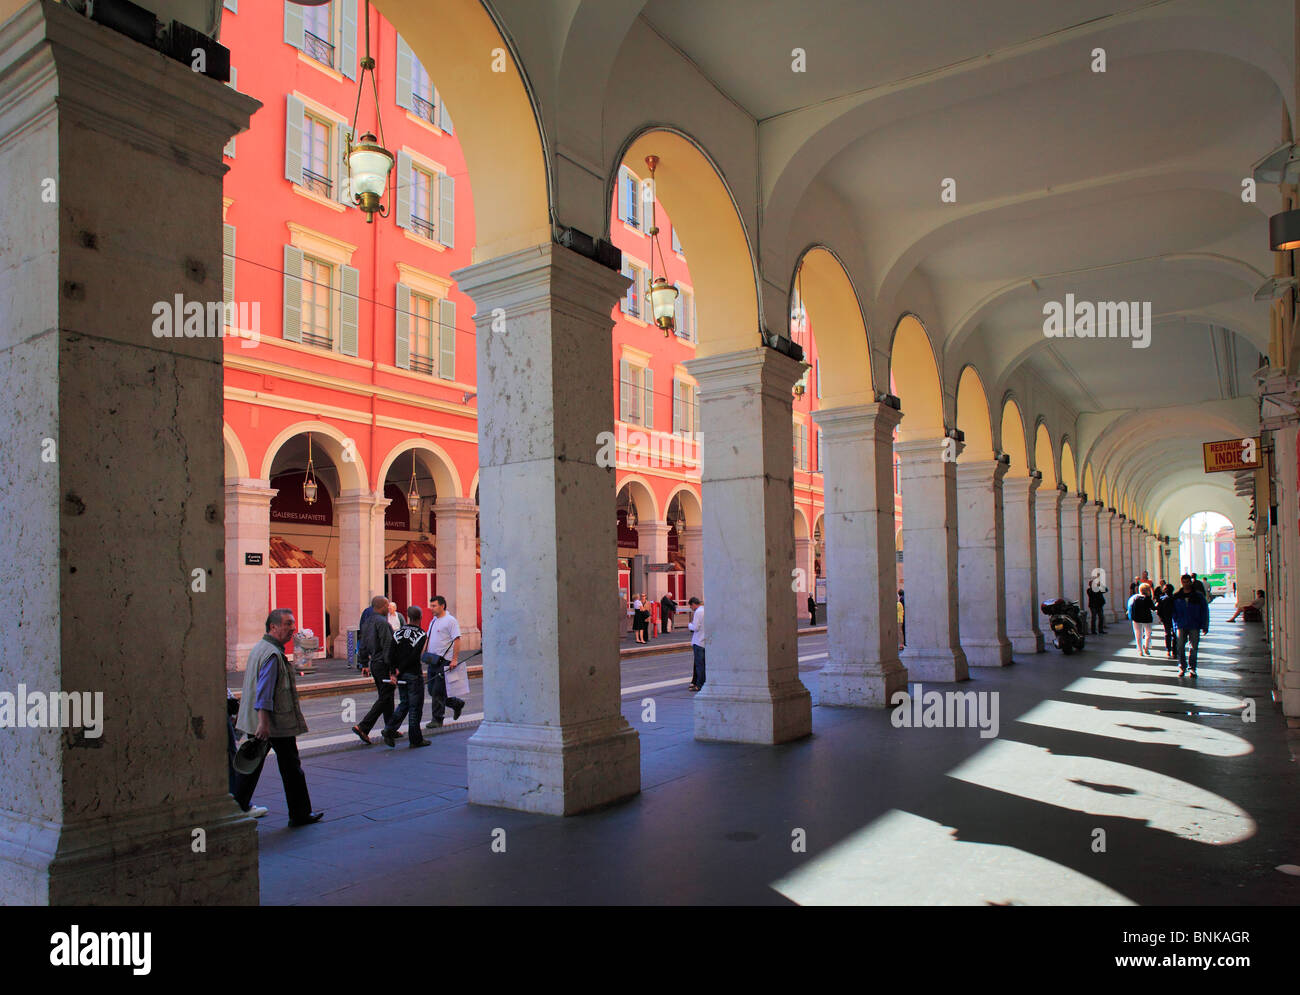 Street scene in downtown Nice on the French Riviera (Cote d'Azur) - Stock Image